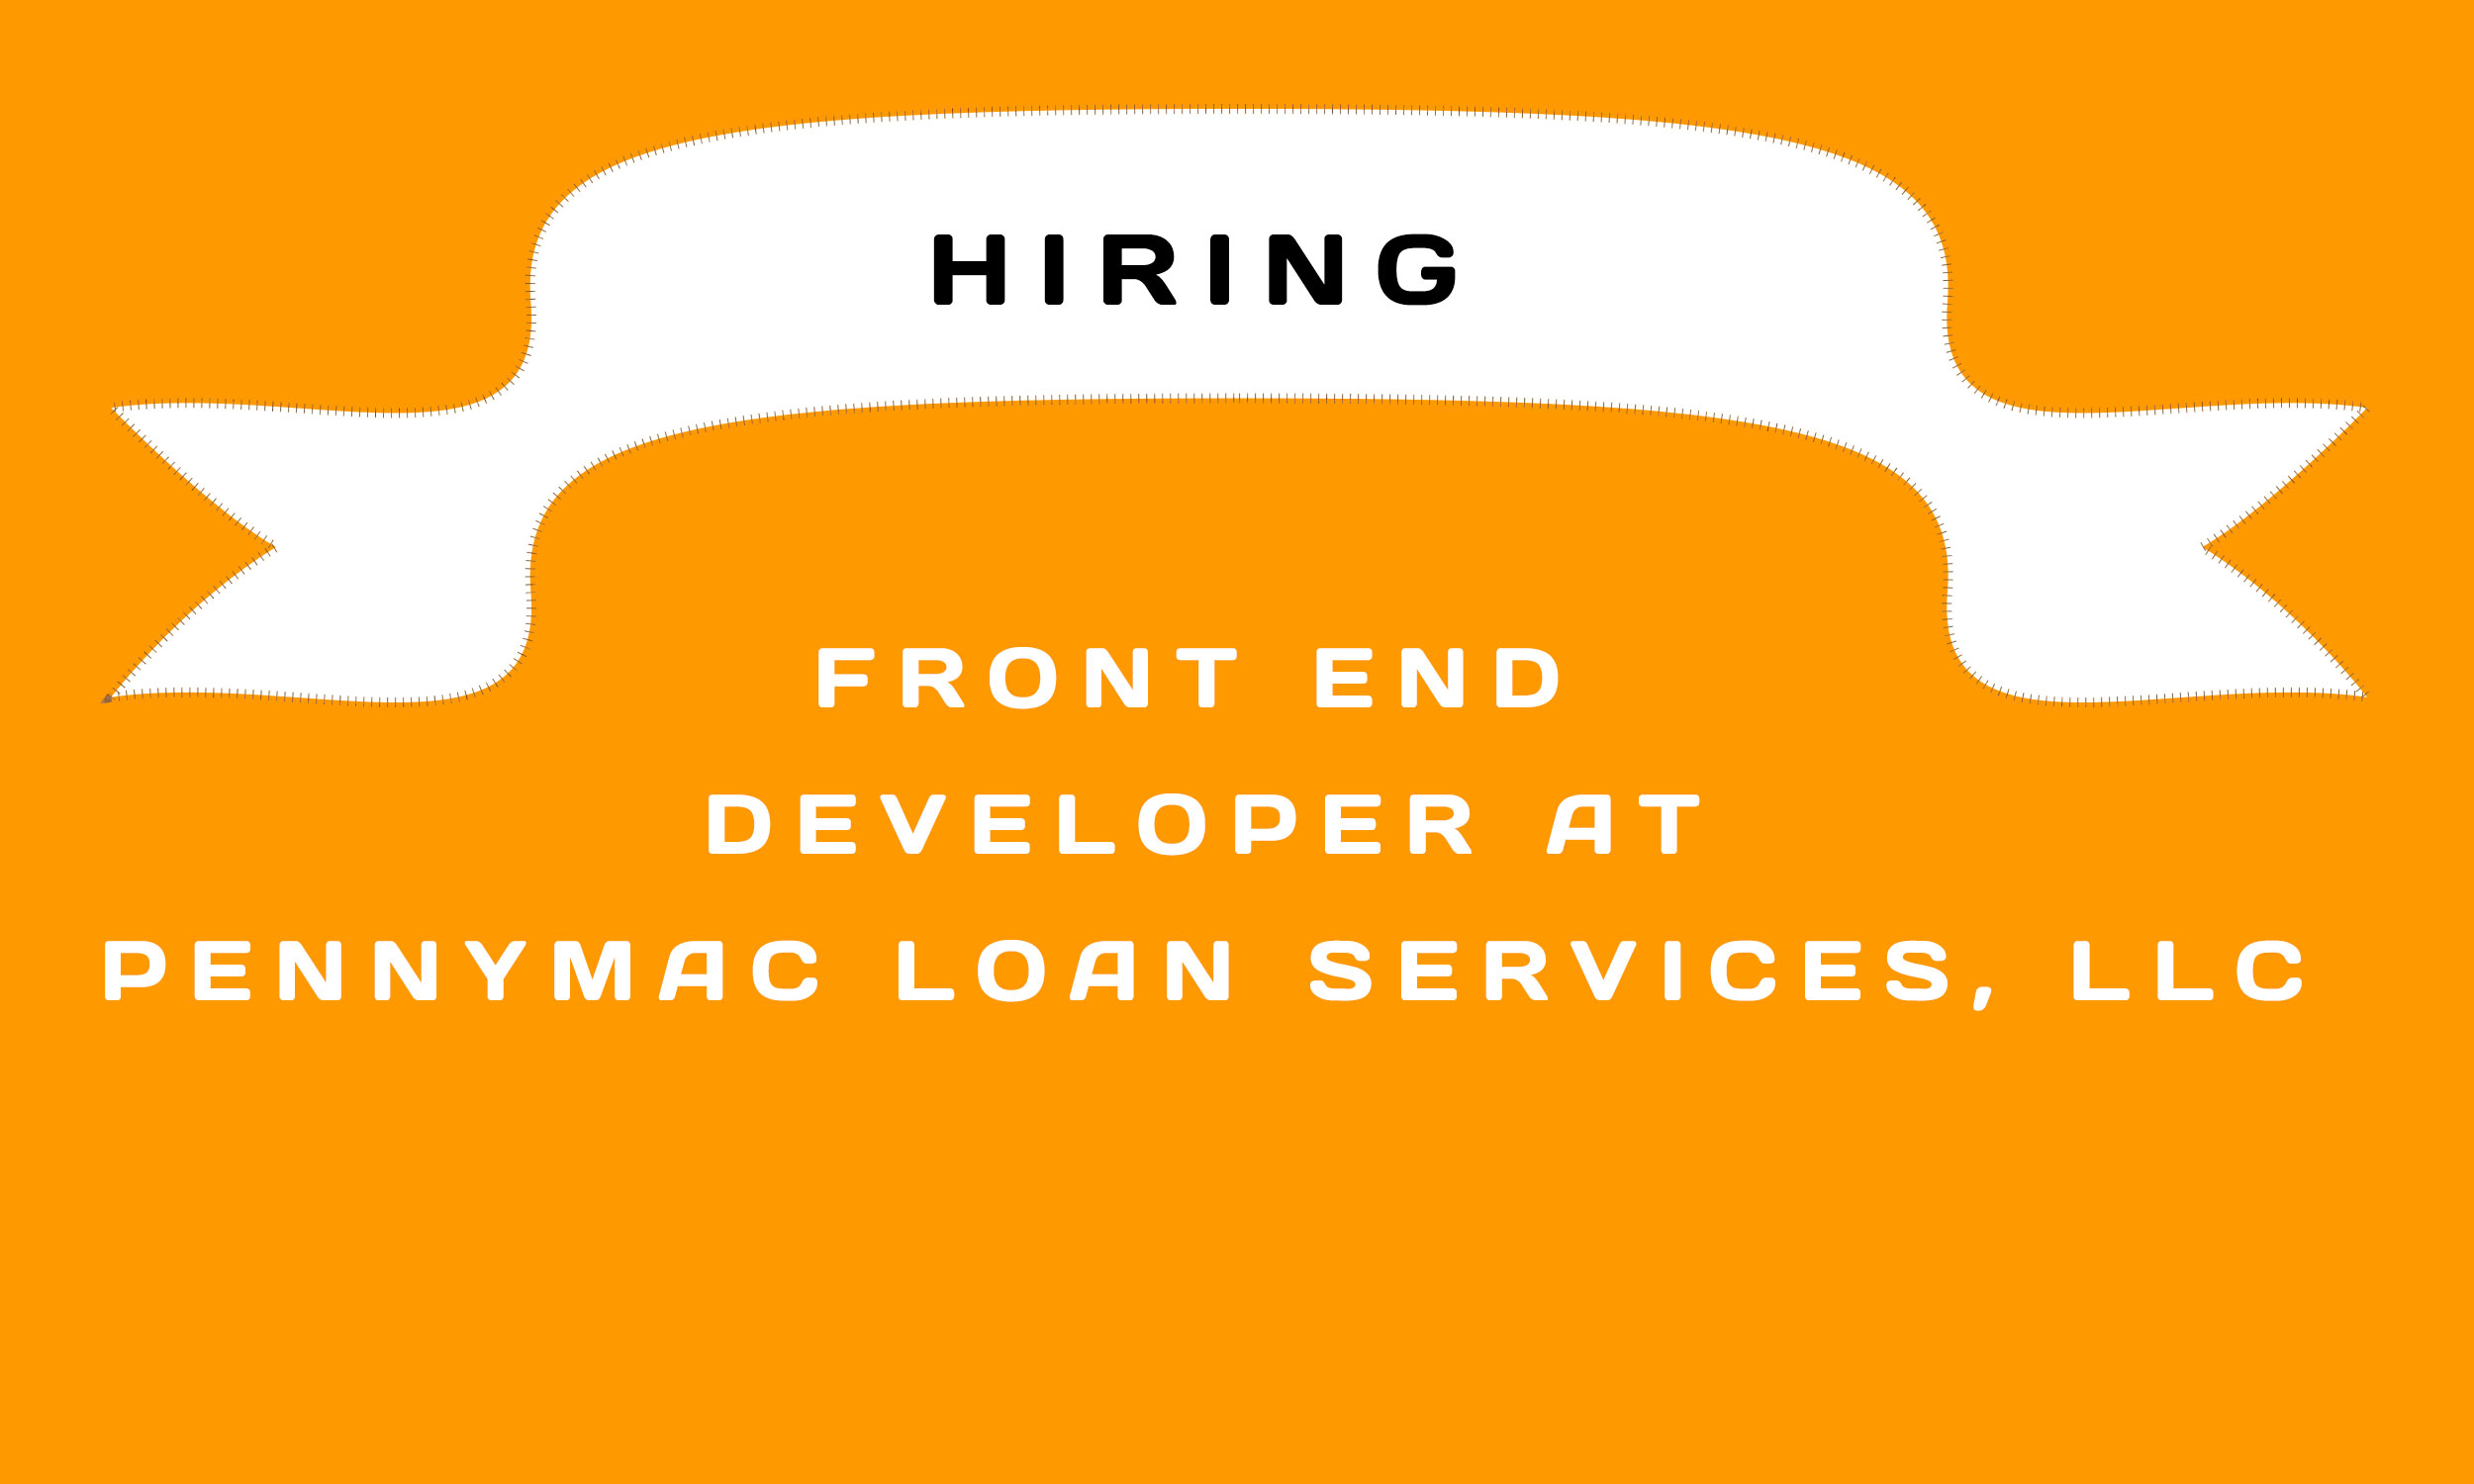 Front End Developer at PennyMac Loan Services